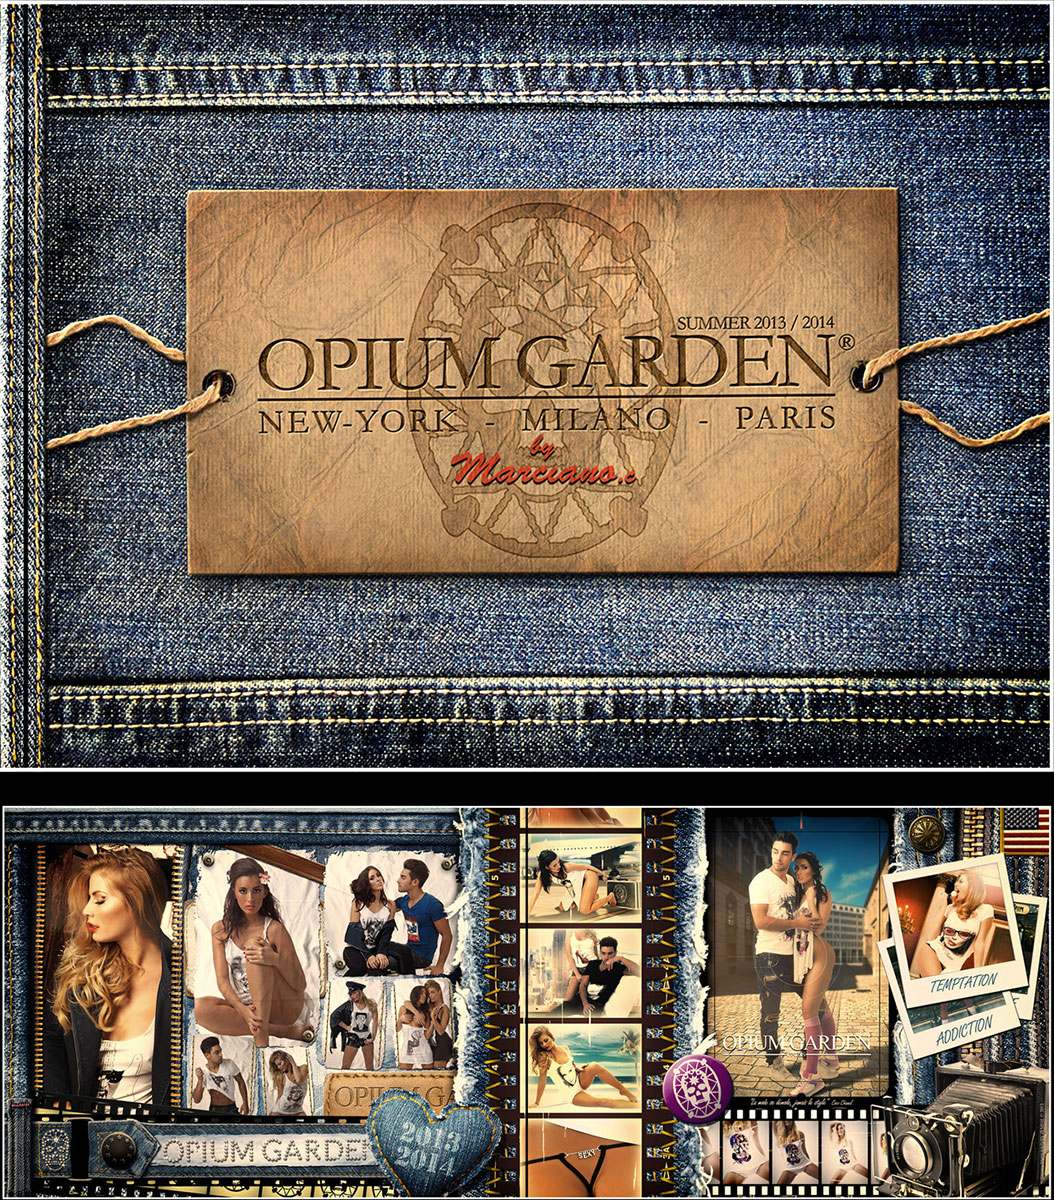 Catalogue : OpiumGarden (Summer 2014)